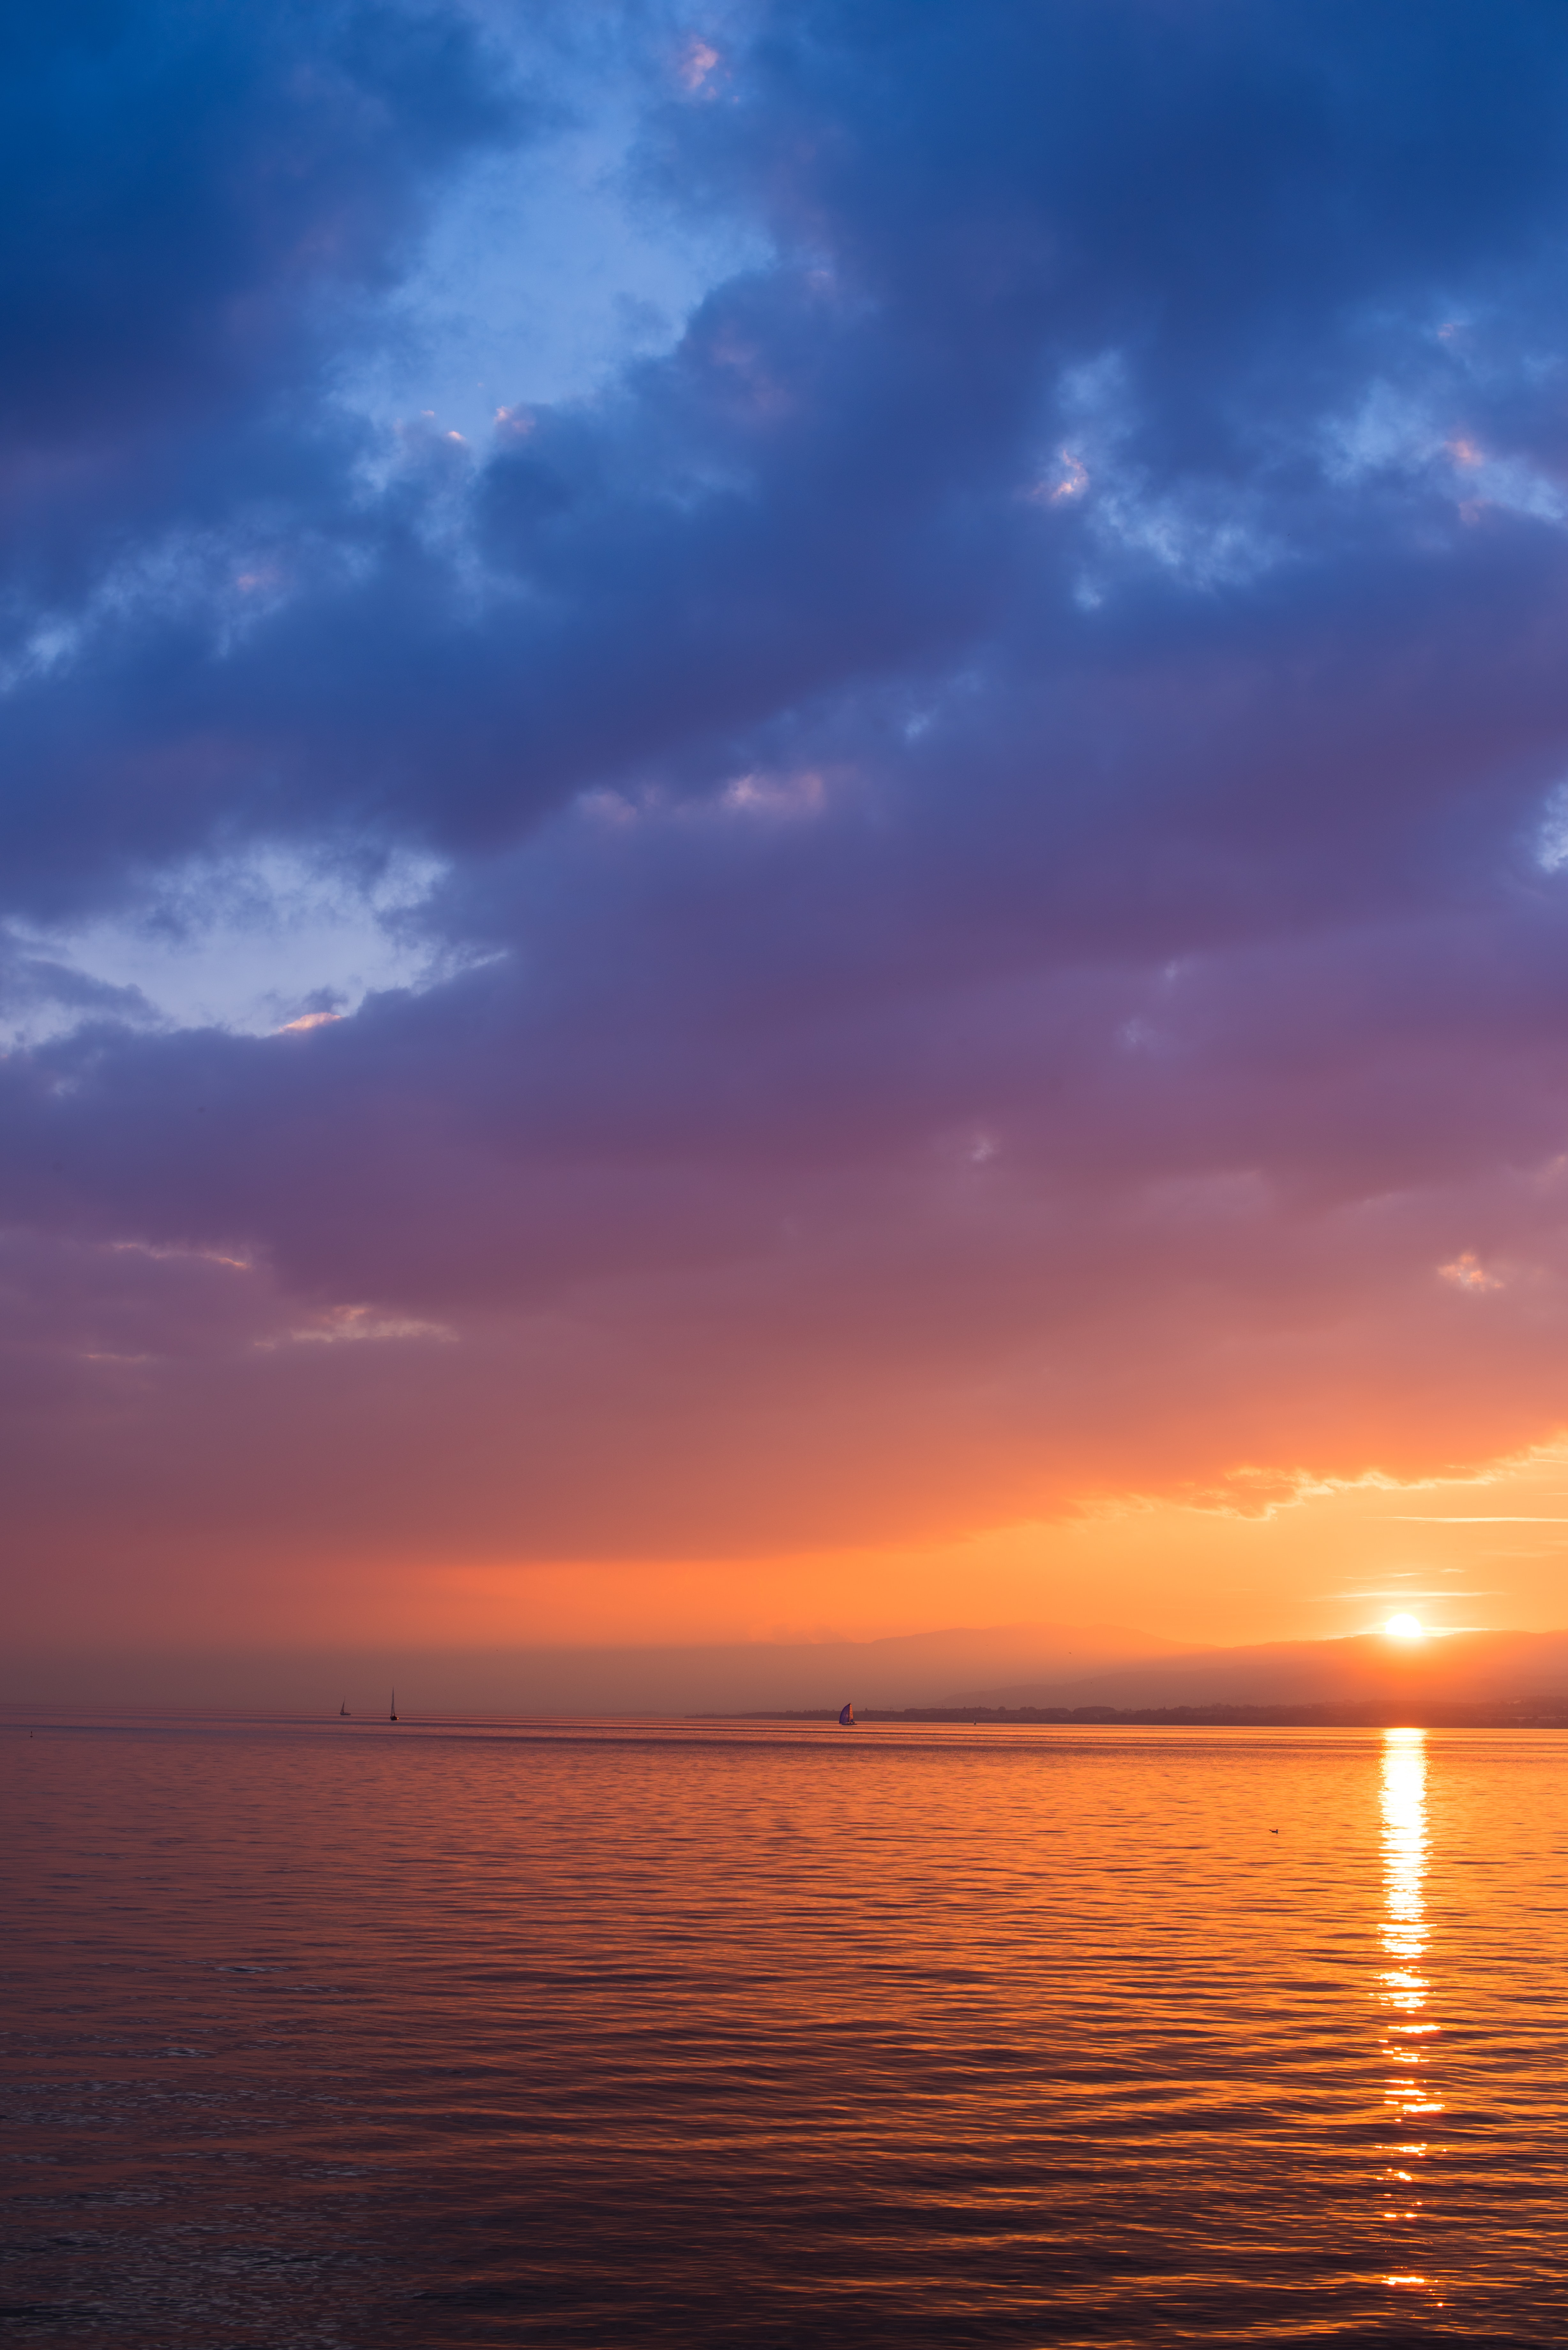 A blue, purple, and orange sunset over the ocean